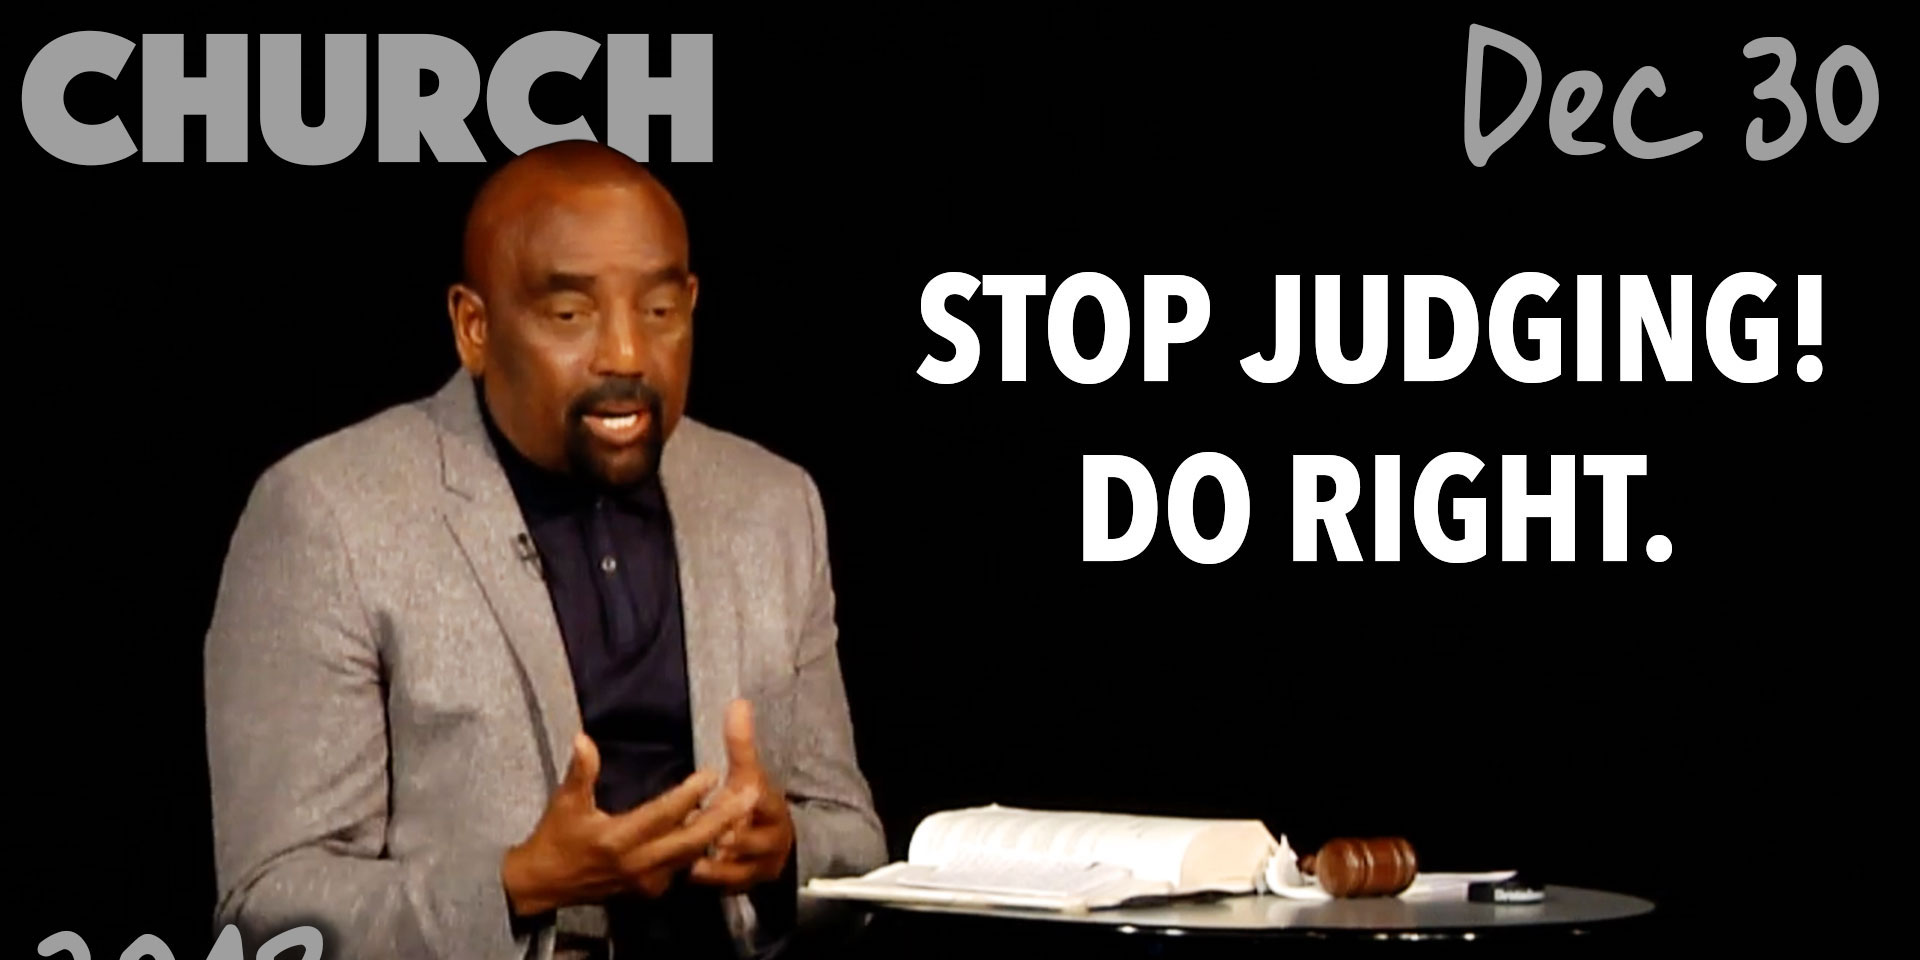 Stop Judging Others! Do Right. (Church, Dec 30)